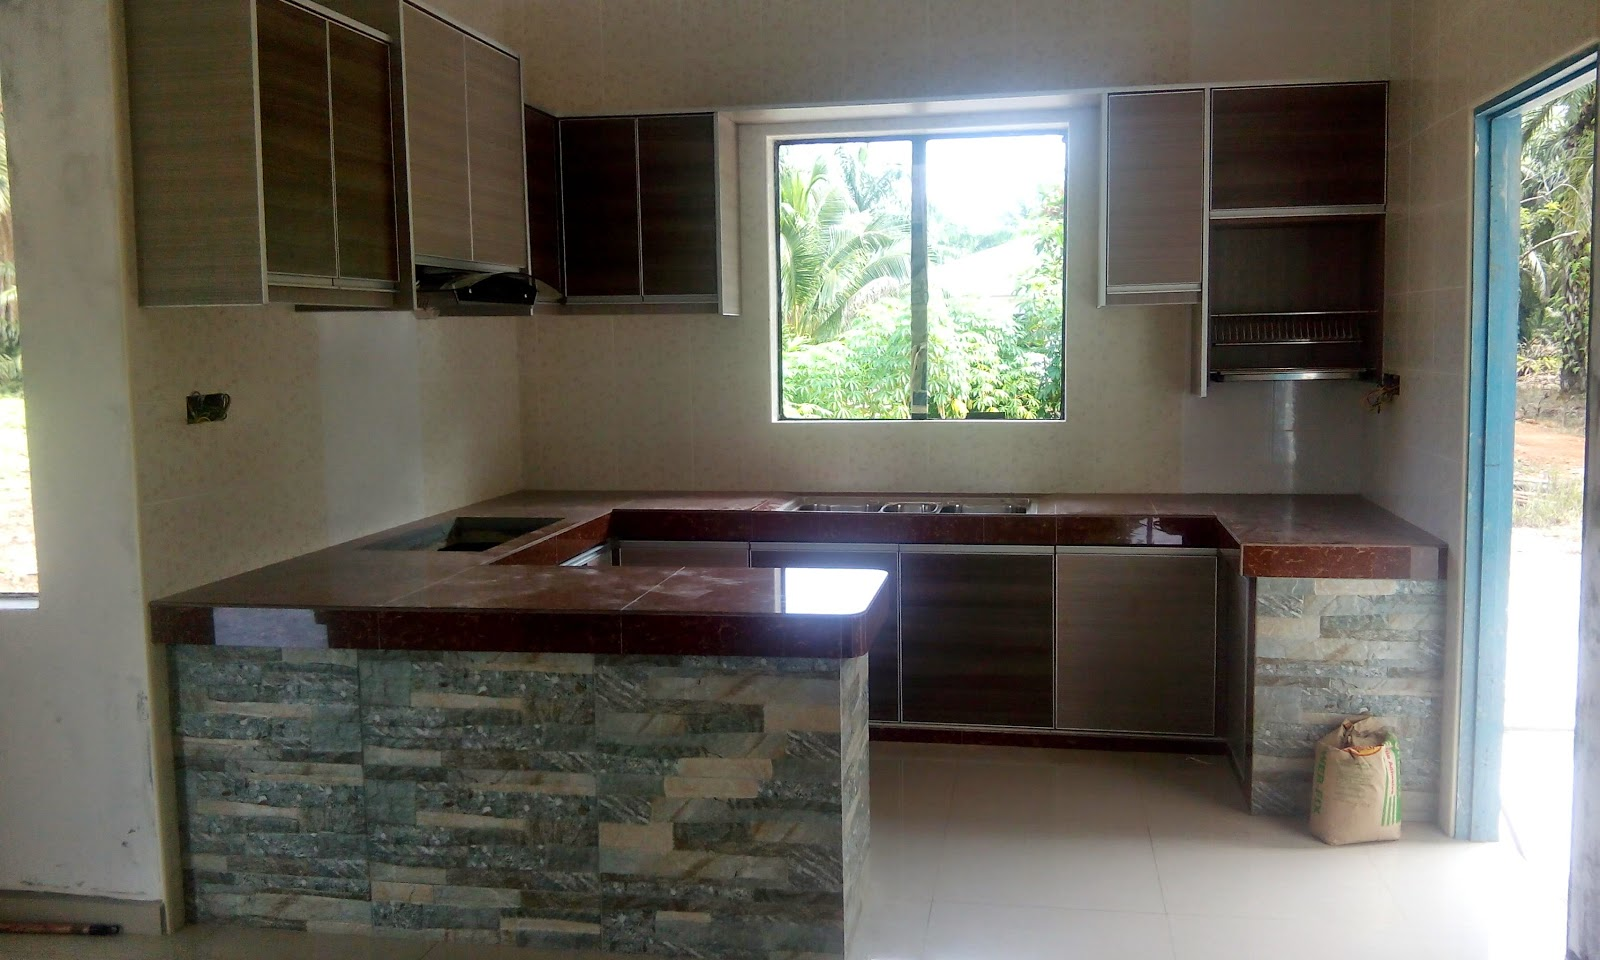 Kabinet King Kabinet Dapur Melaka Related Keywords - Kabinet Dapur